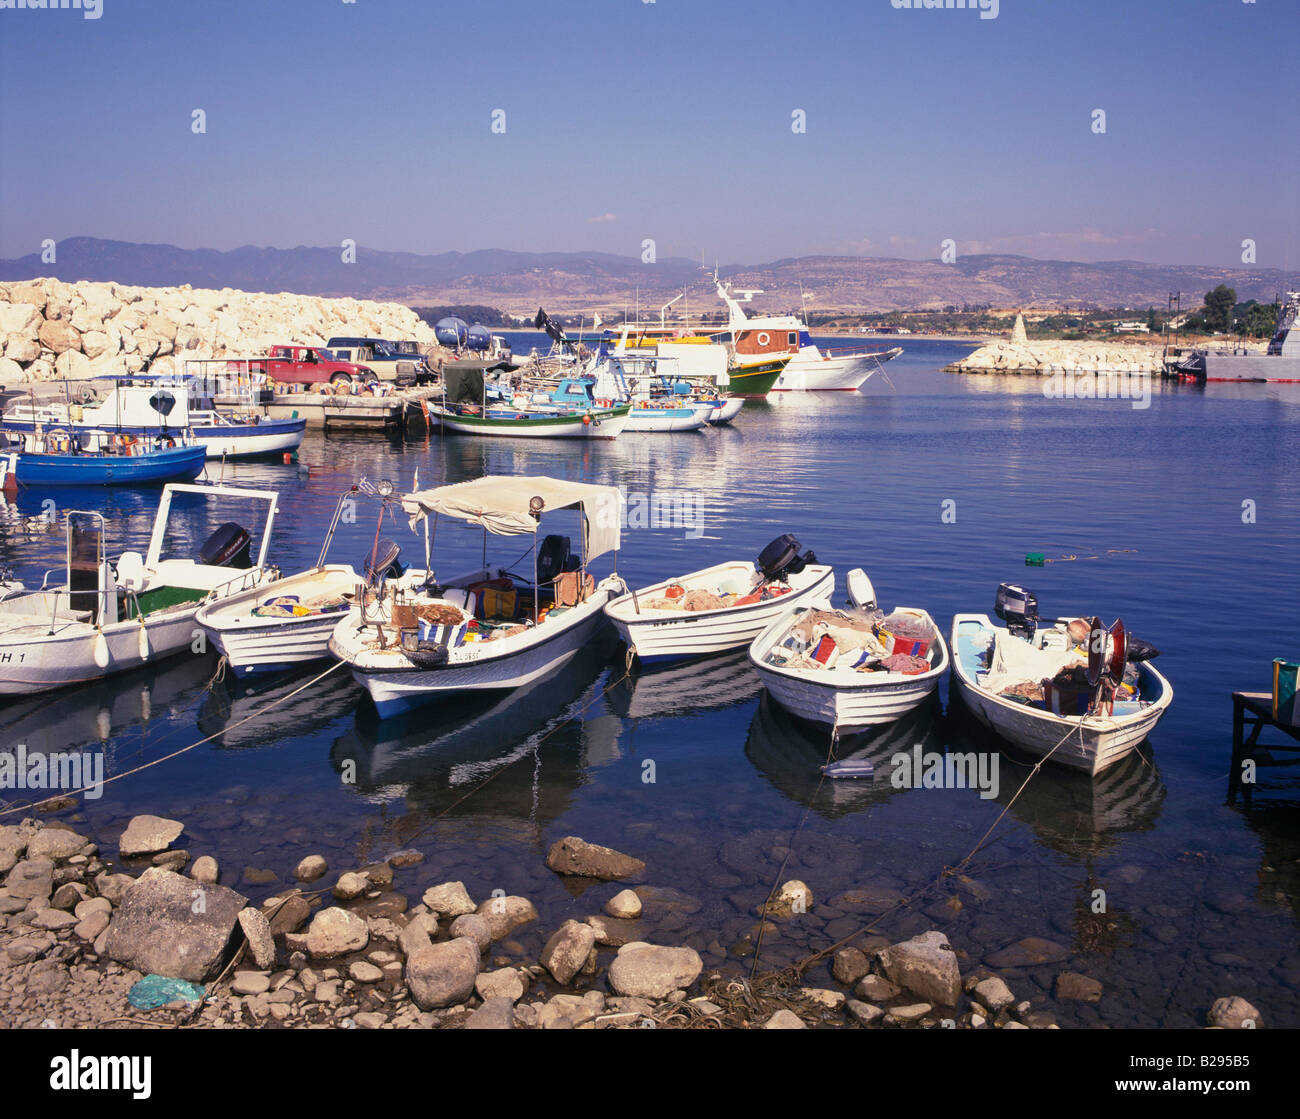 CYPRUS Latchi Date 10 06 2008 Ref ZB693 114939 0002 COMPULSORY CREDIT World Pictures Photoshot - Stock Image